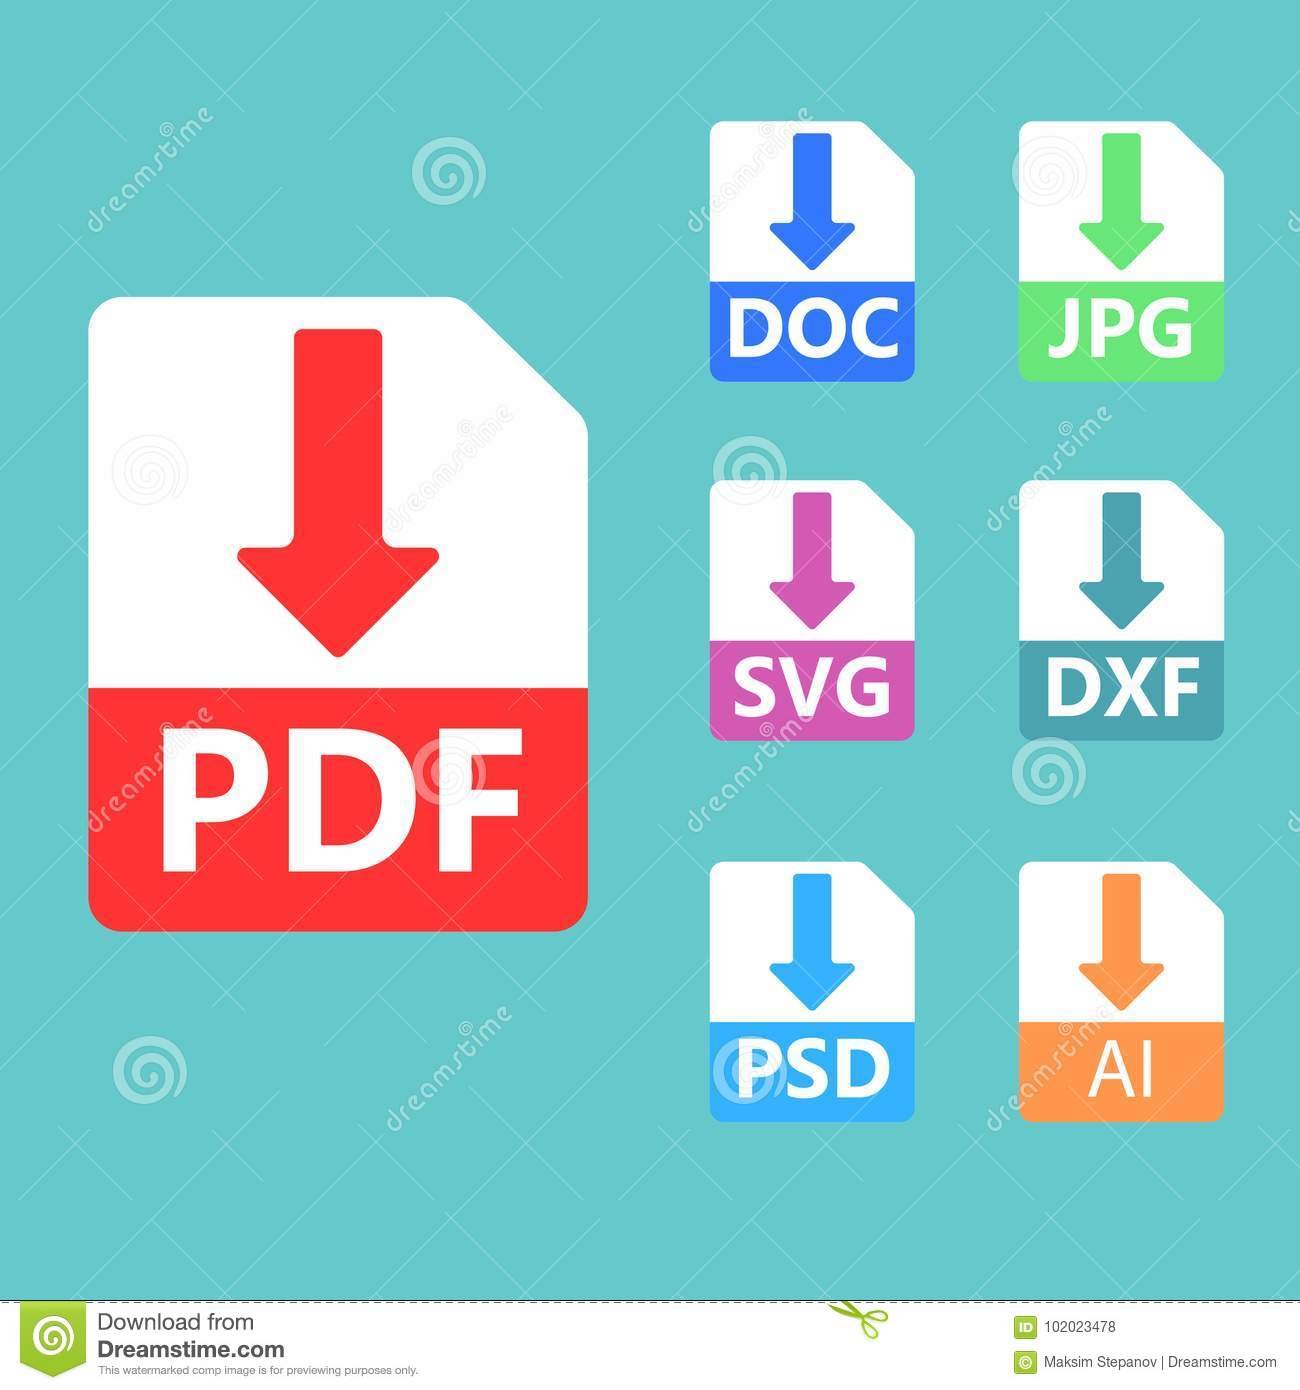 Pdf Svg Doc Jpg Psd Ai File Formats Vector Icons Editorial Stock Photo Illustration Of Banner Document 102023478